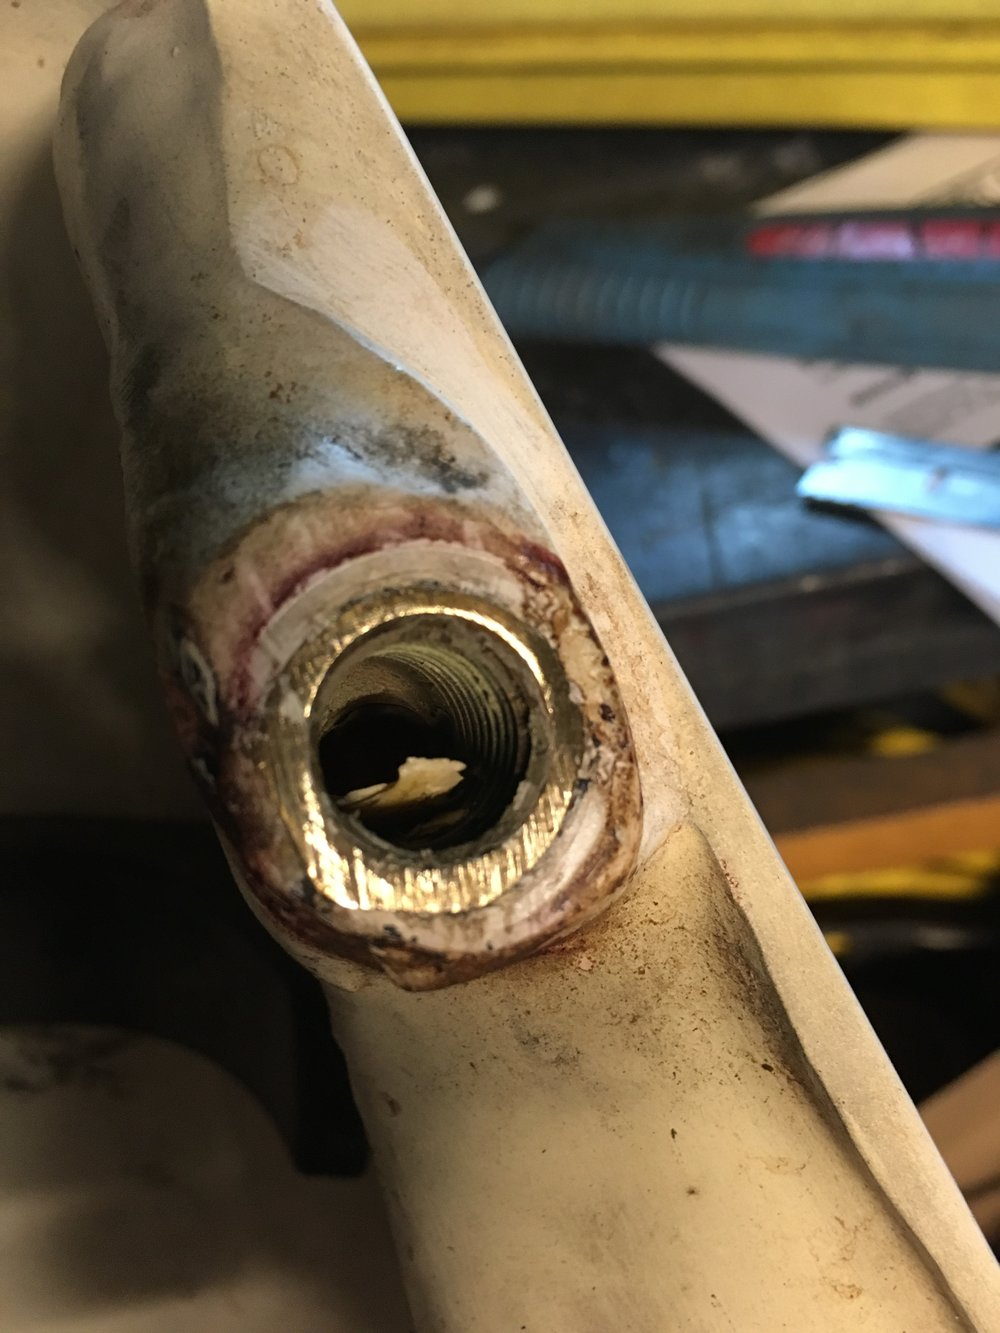 The bung on the opposite side was gouged even worse, concealed by a layer of paint. Clearly not just an oversight, but a consistent fail. There was a lot of red residue from gas that wicked up under the tank.